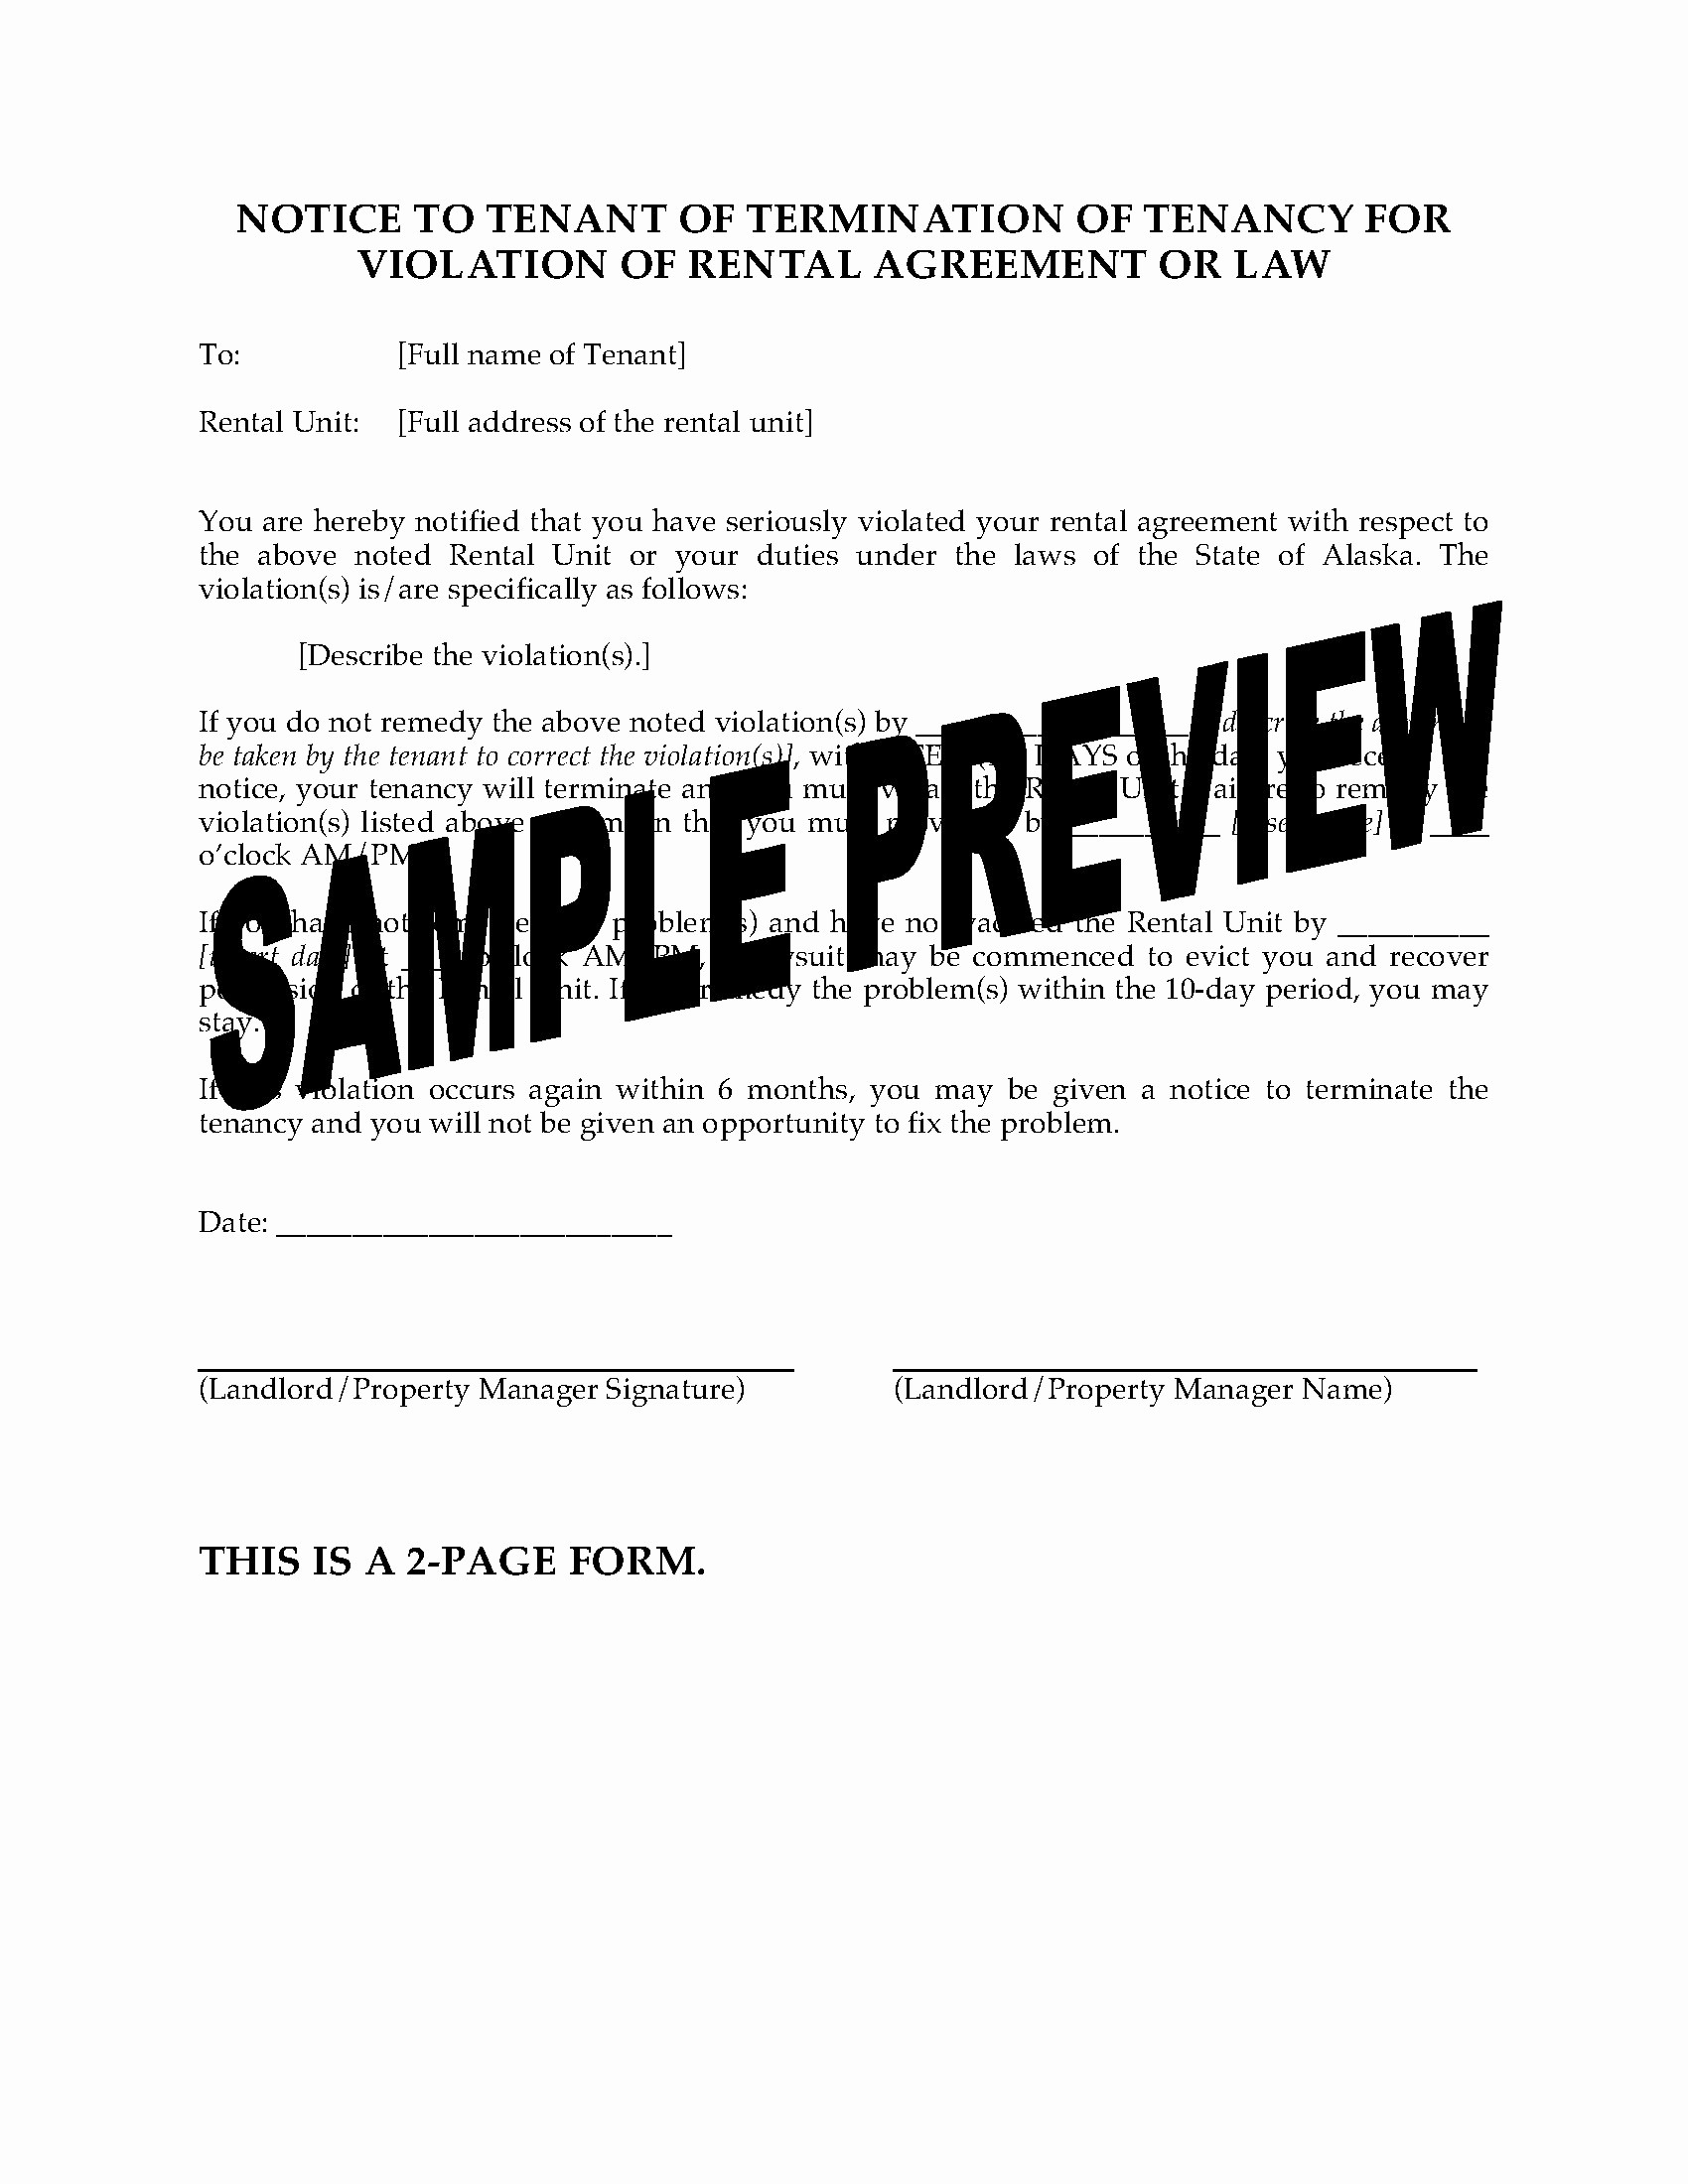 Notice Of Lease Violation Template Unique Alaska Notice Of Termination Of Tenancy for Violation Of